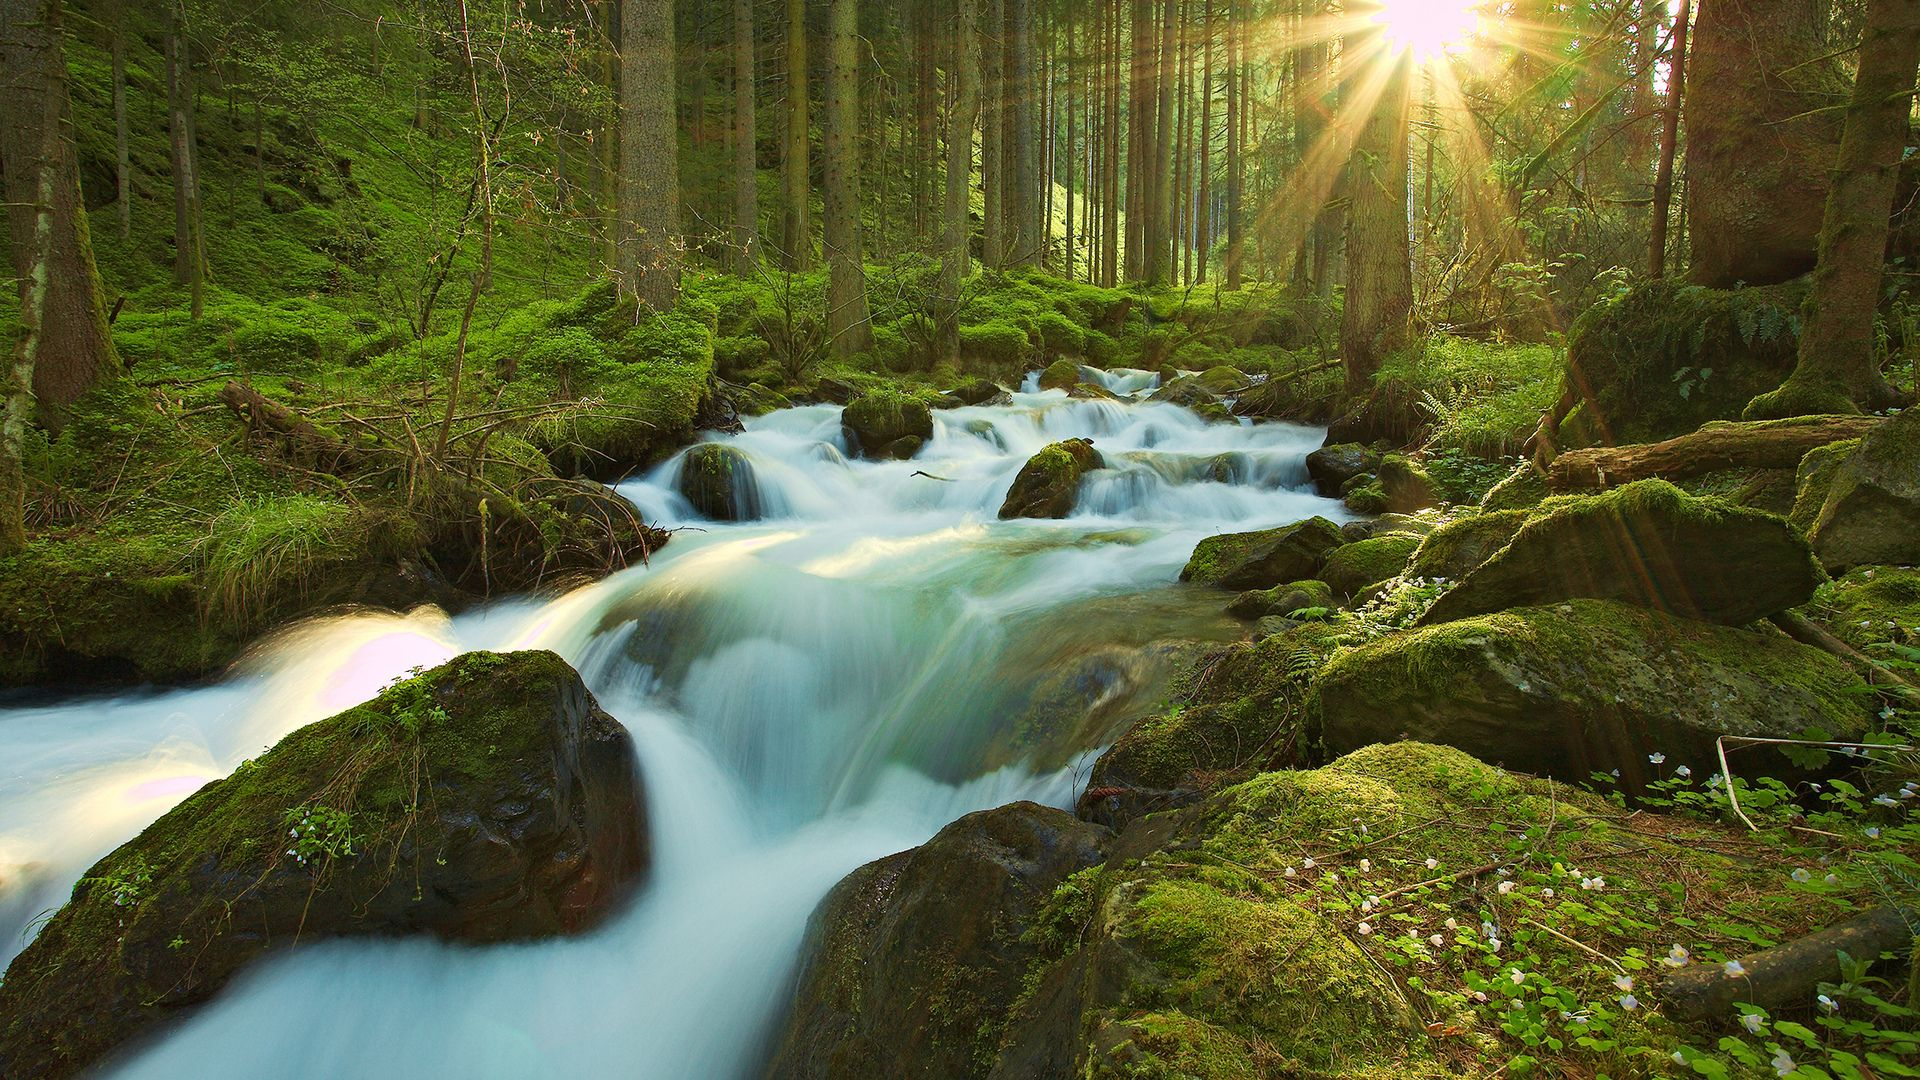 Pictures Of The Beautiful Streams